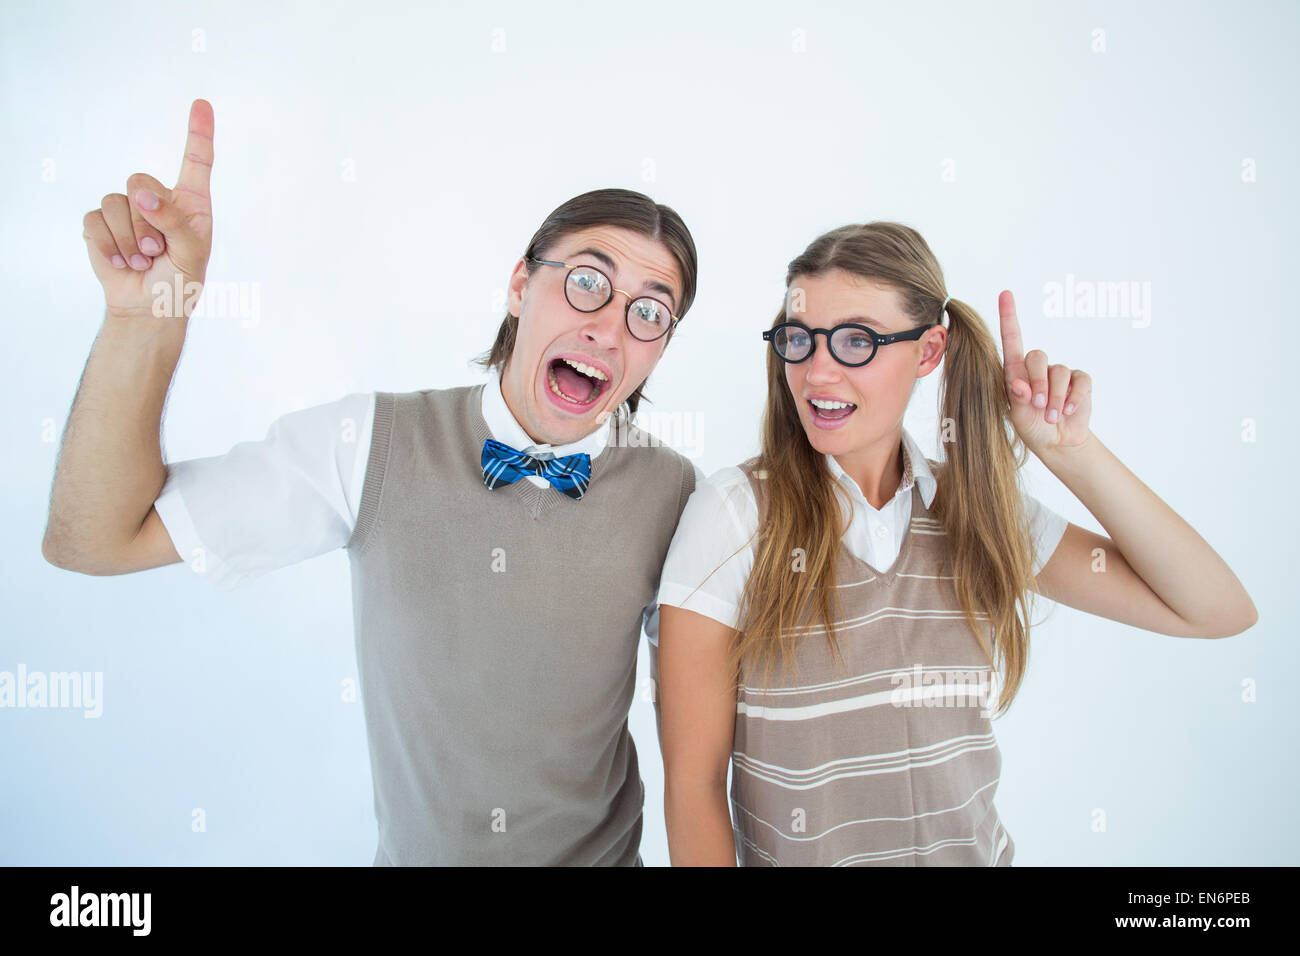 Geeky hipsters pointing - Stock Image